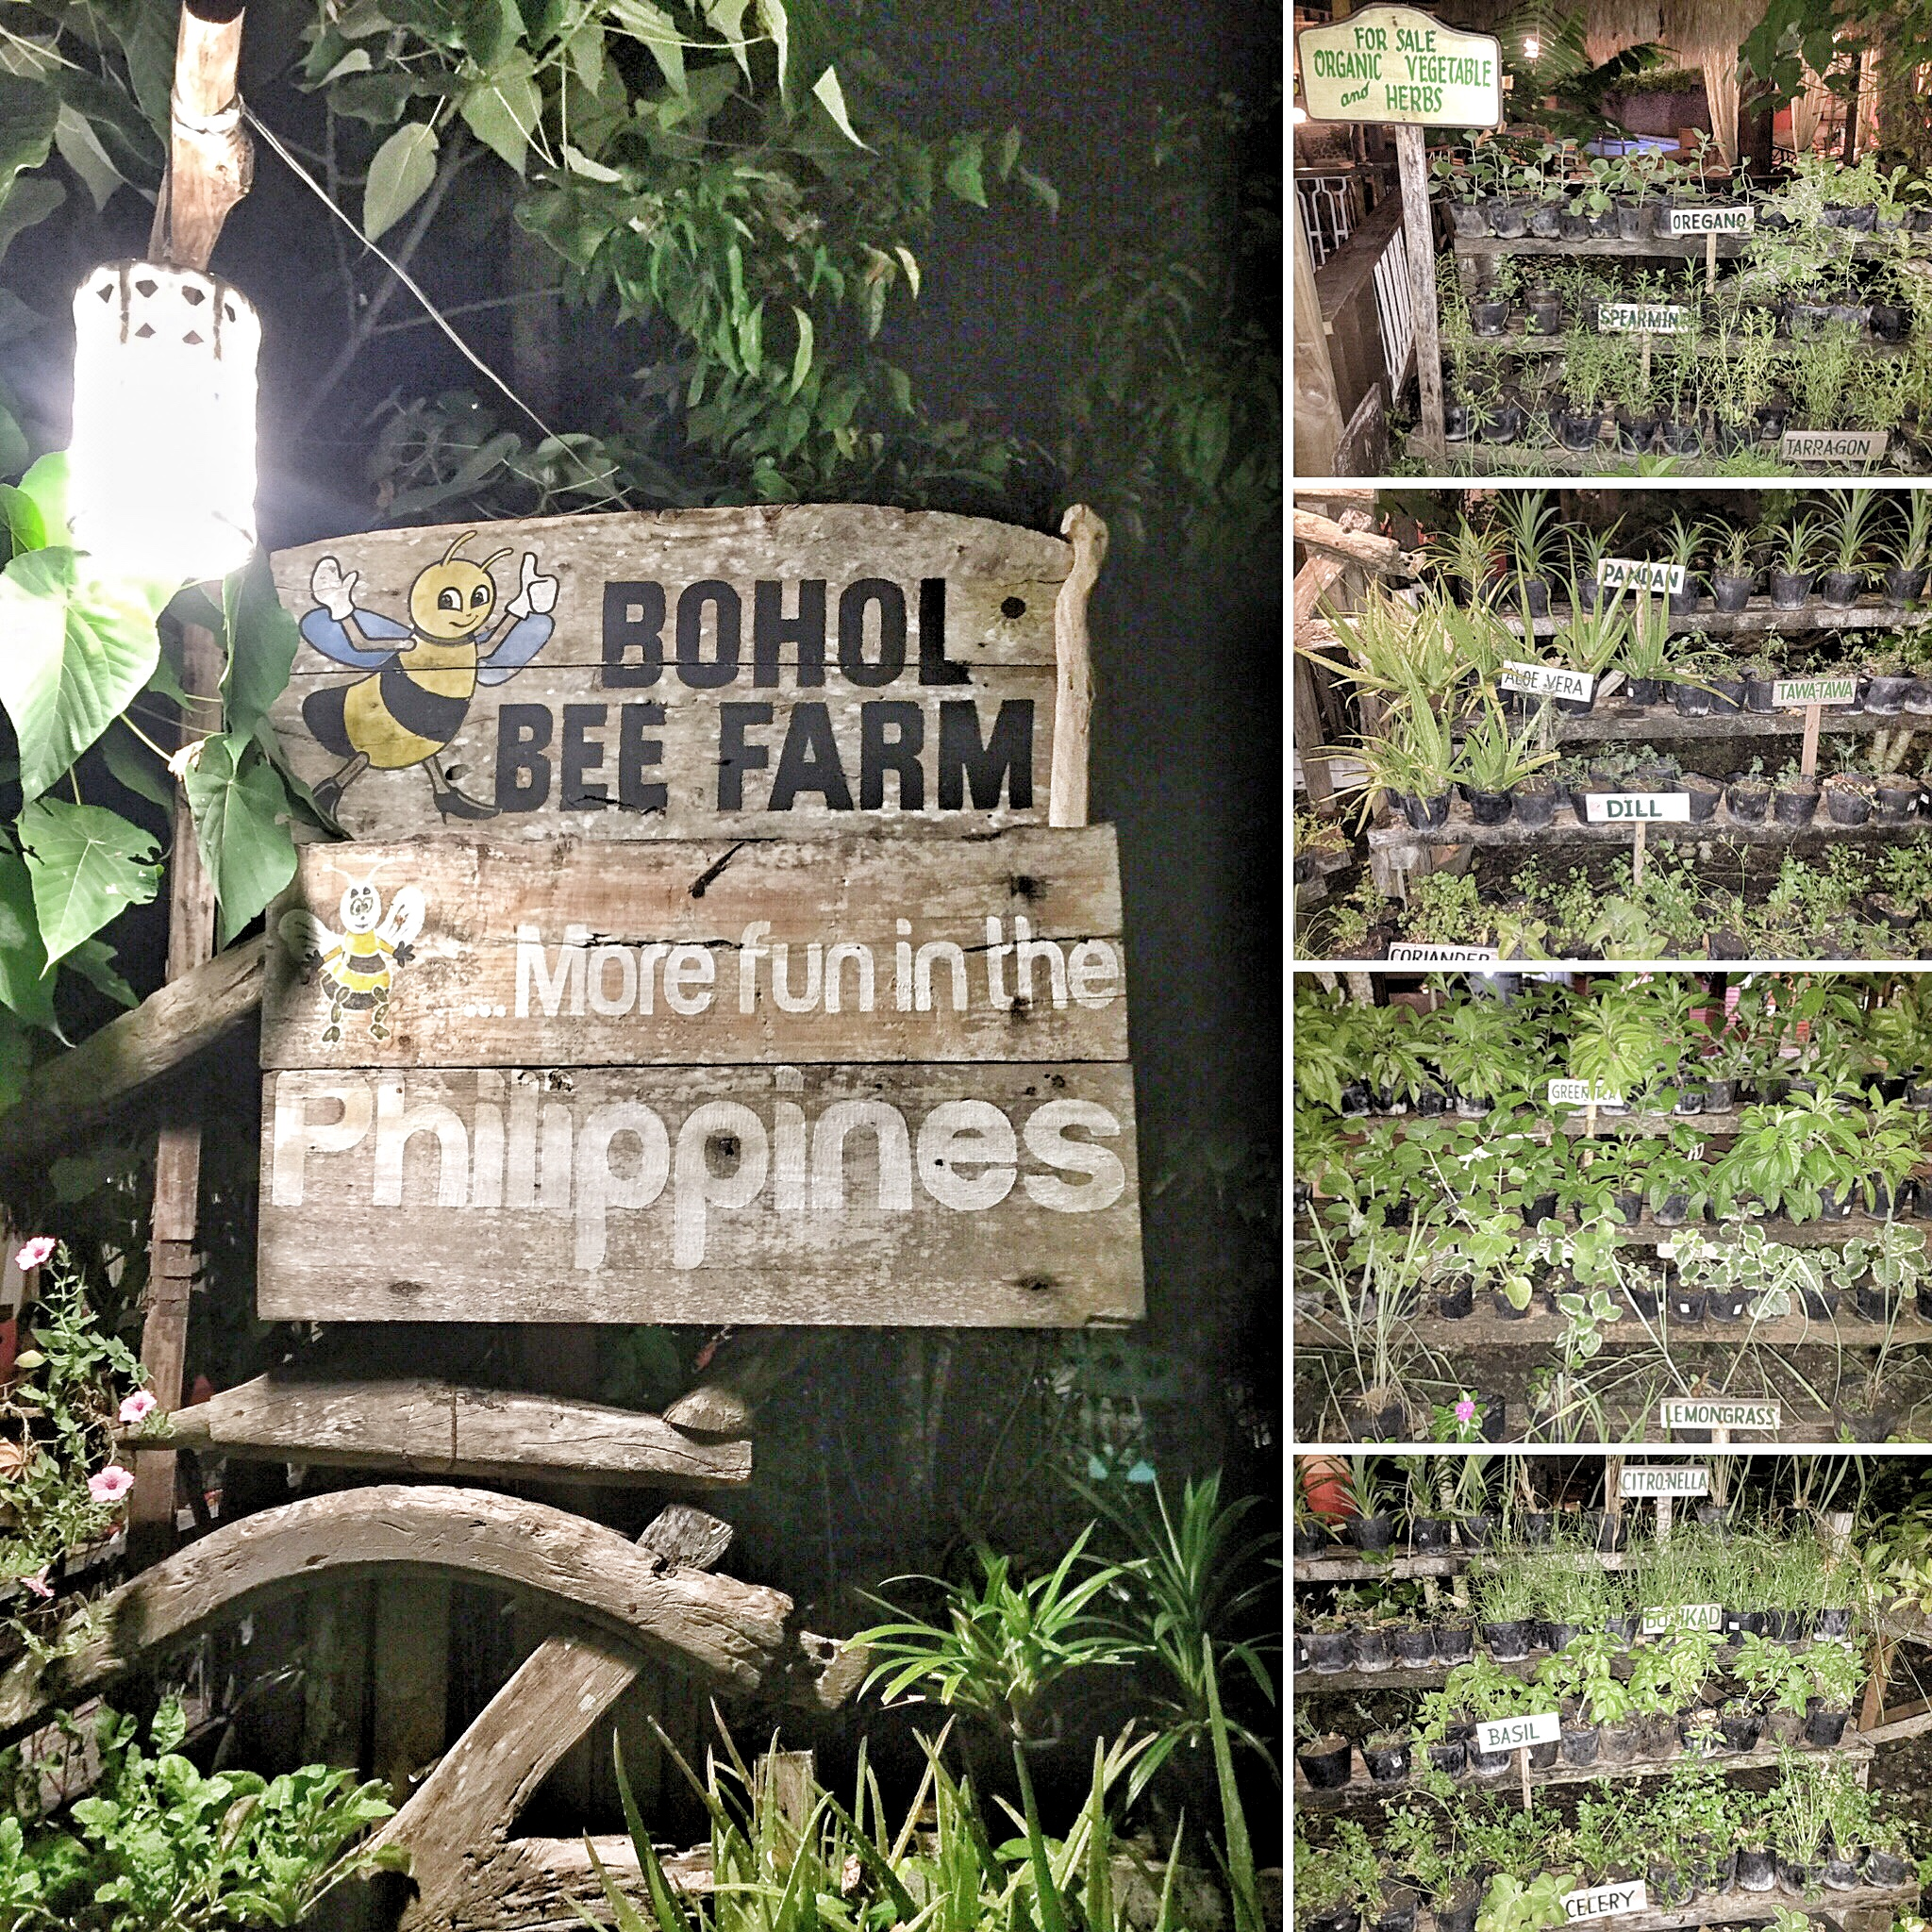 The Bohol Bee Farm serving organic fare and selling sustainable products.